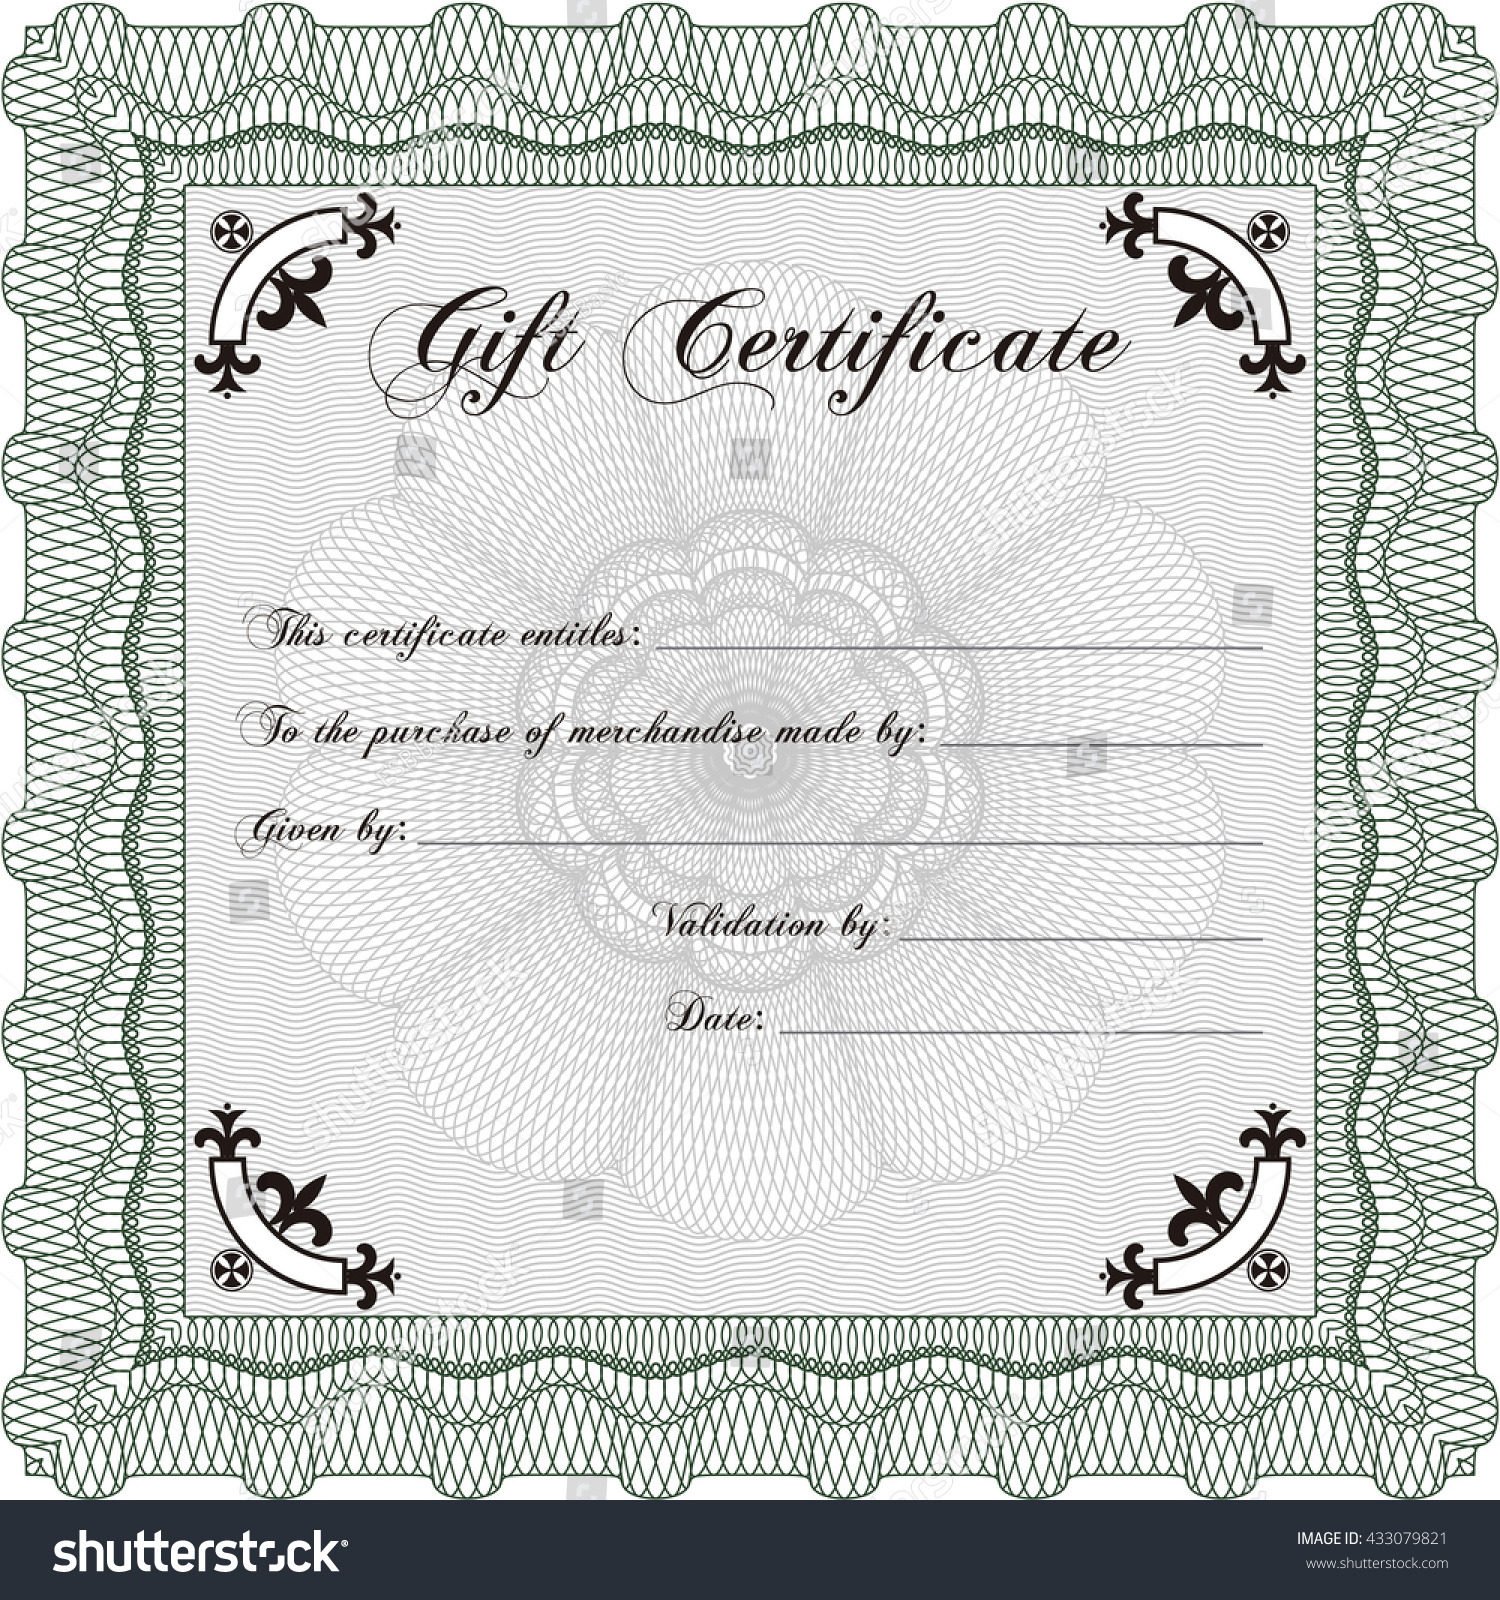 Gift Certificate Template Linear Background Beauty Stock Vector - Beauty gift certificate template